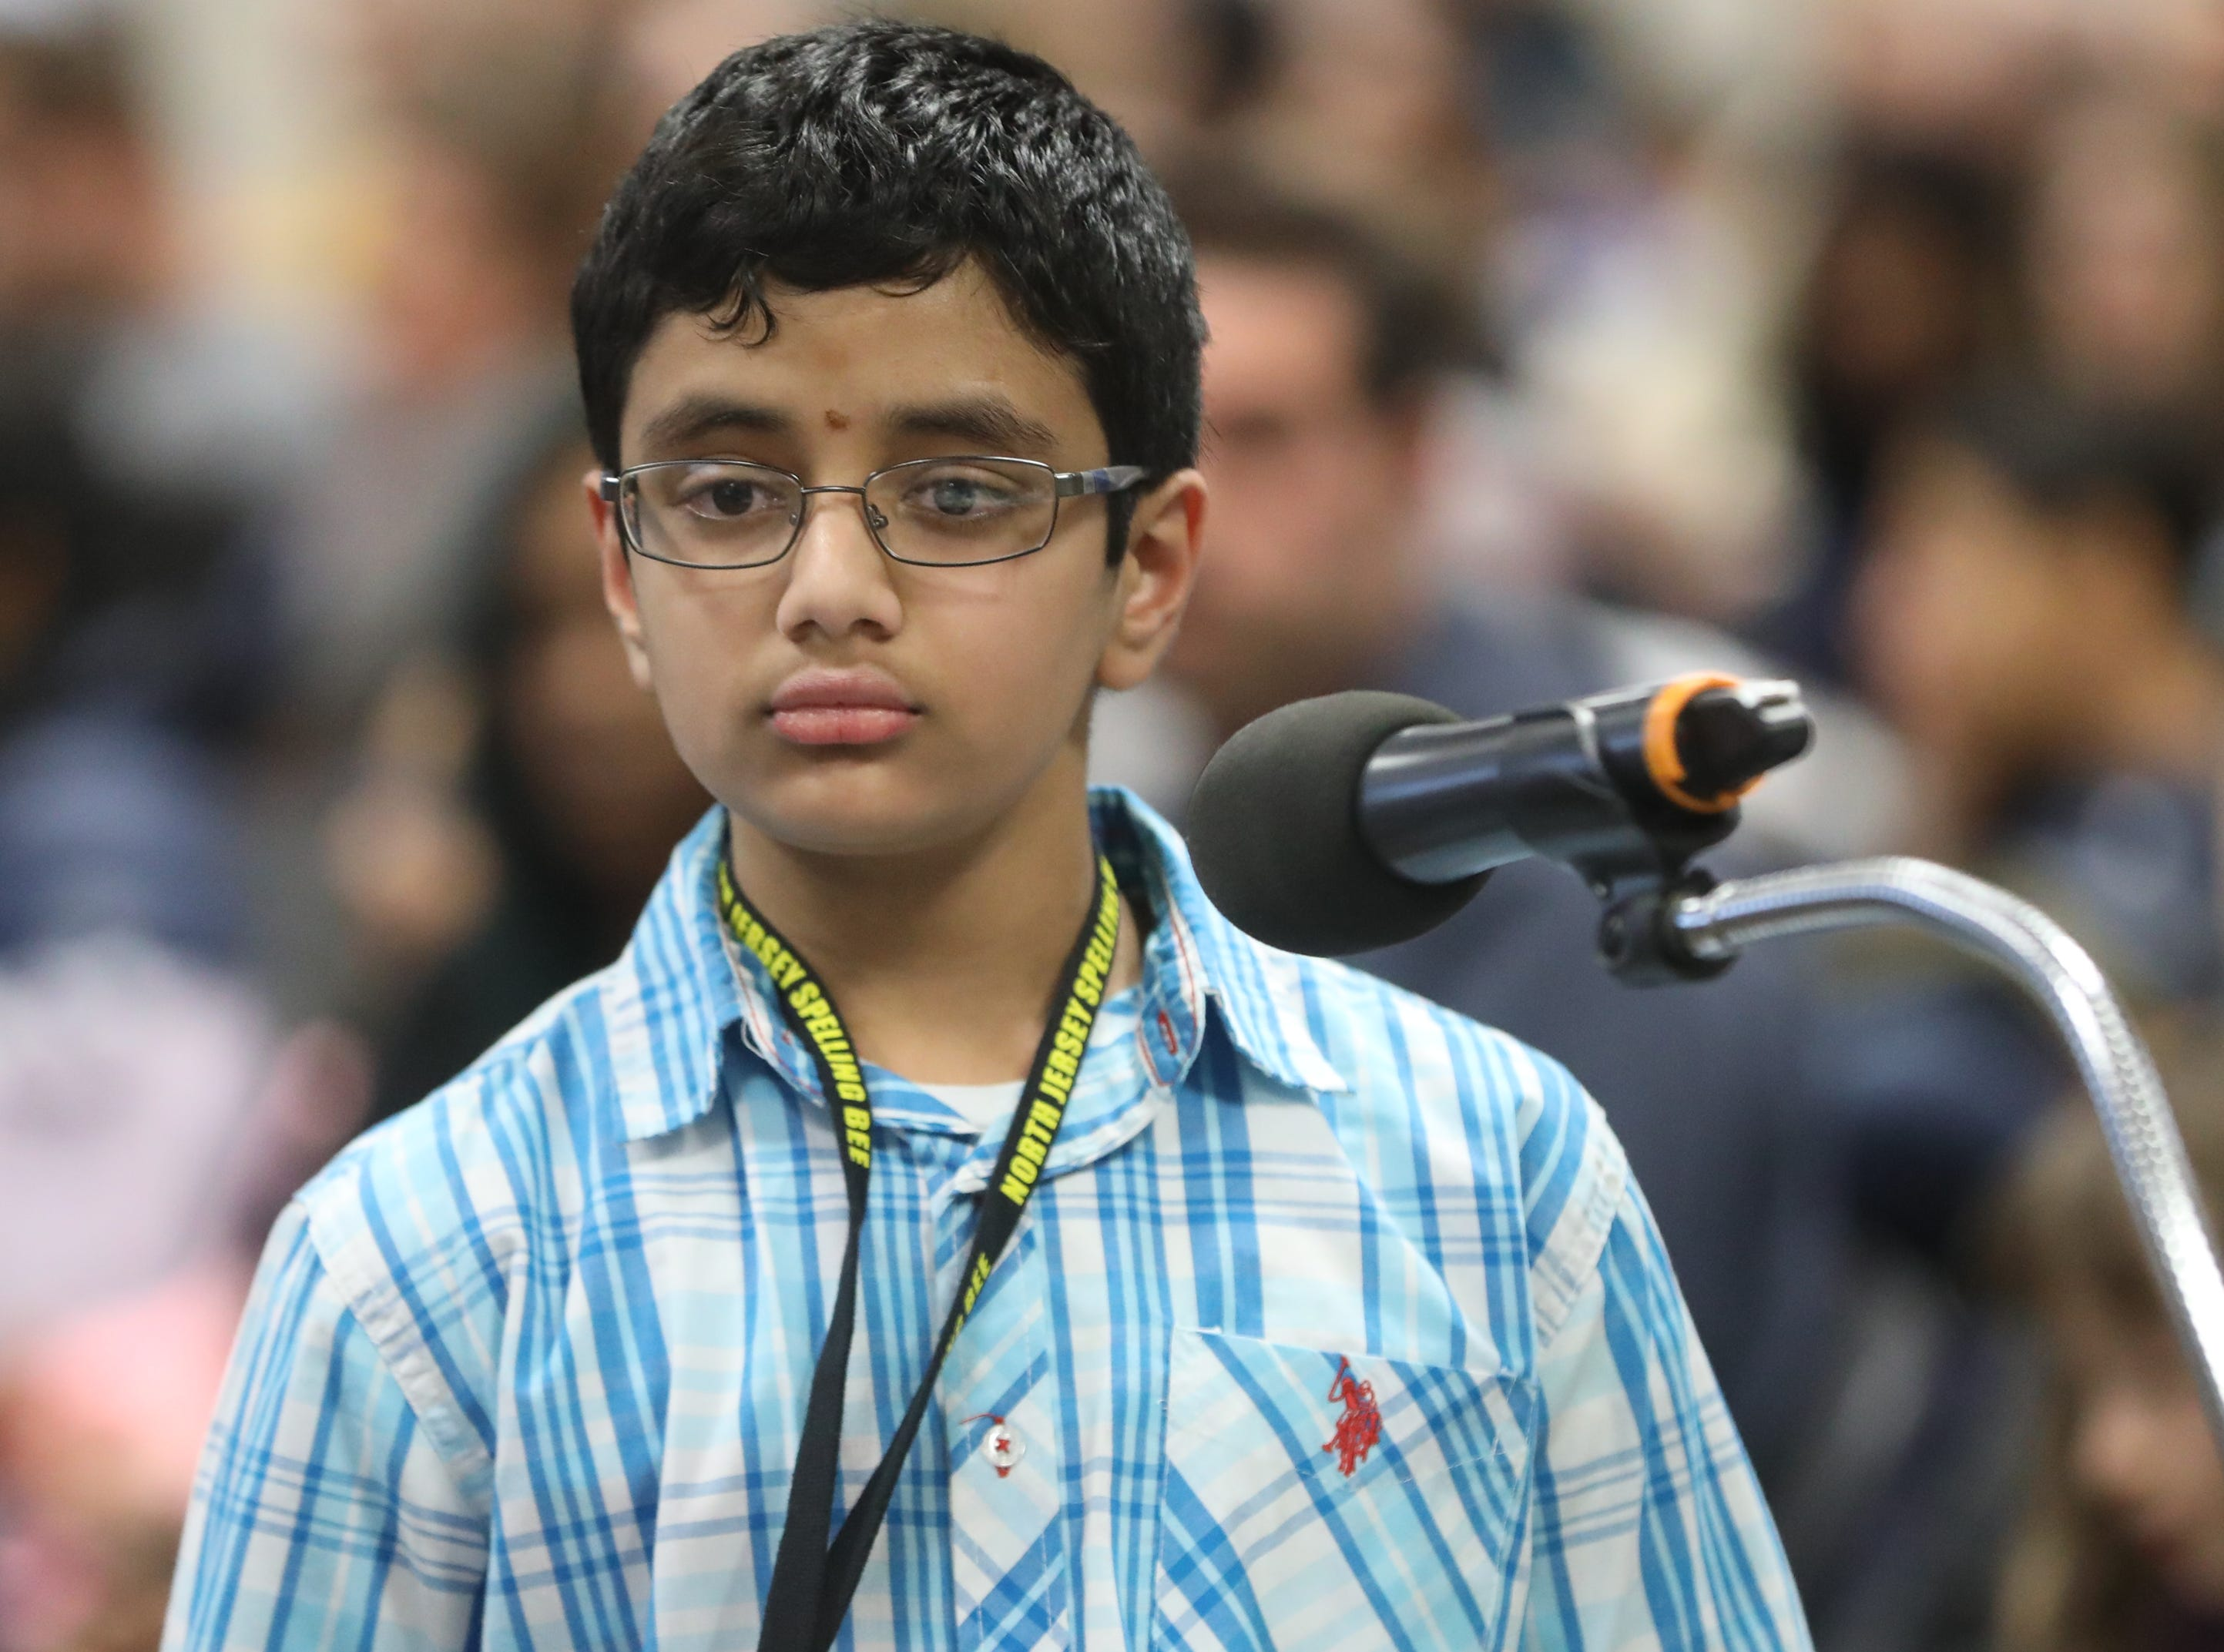 Srinidhaya Vempati, of New Milford, competes in the first round of the 2019 North Jersey Spelling Bee, in Paramus. Thursday, March 14, 2019